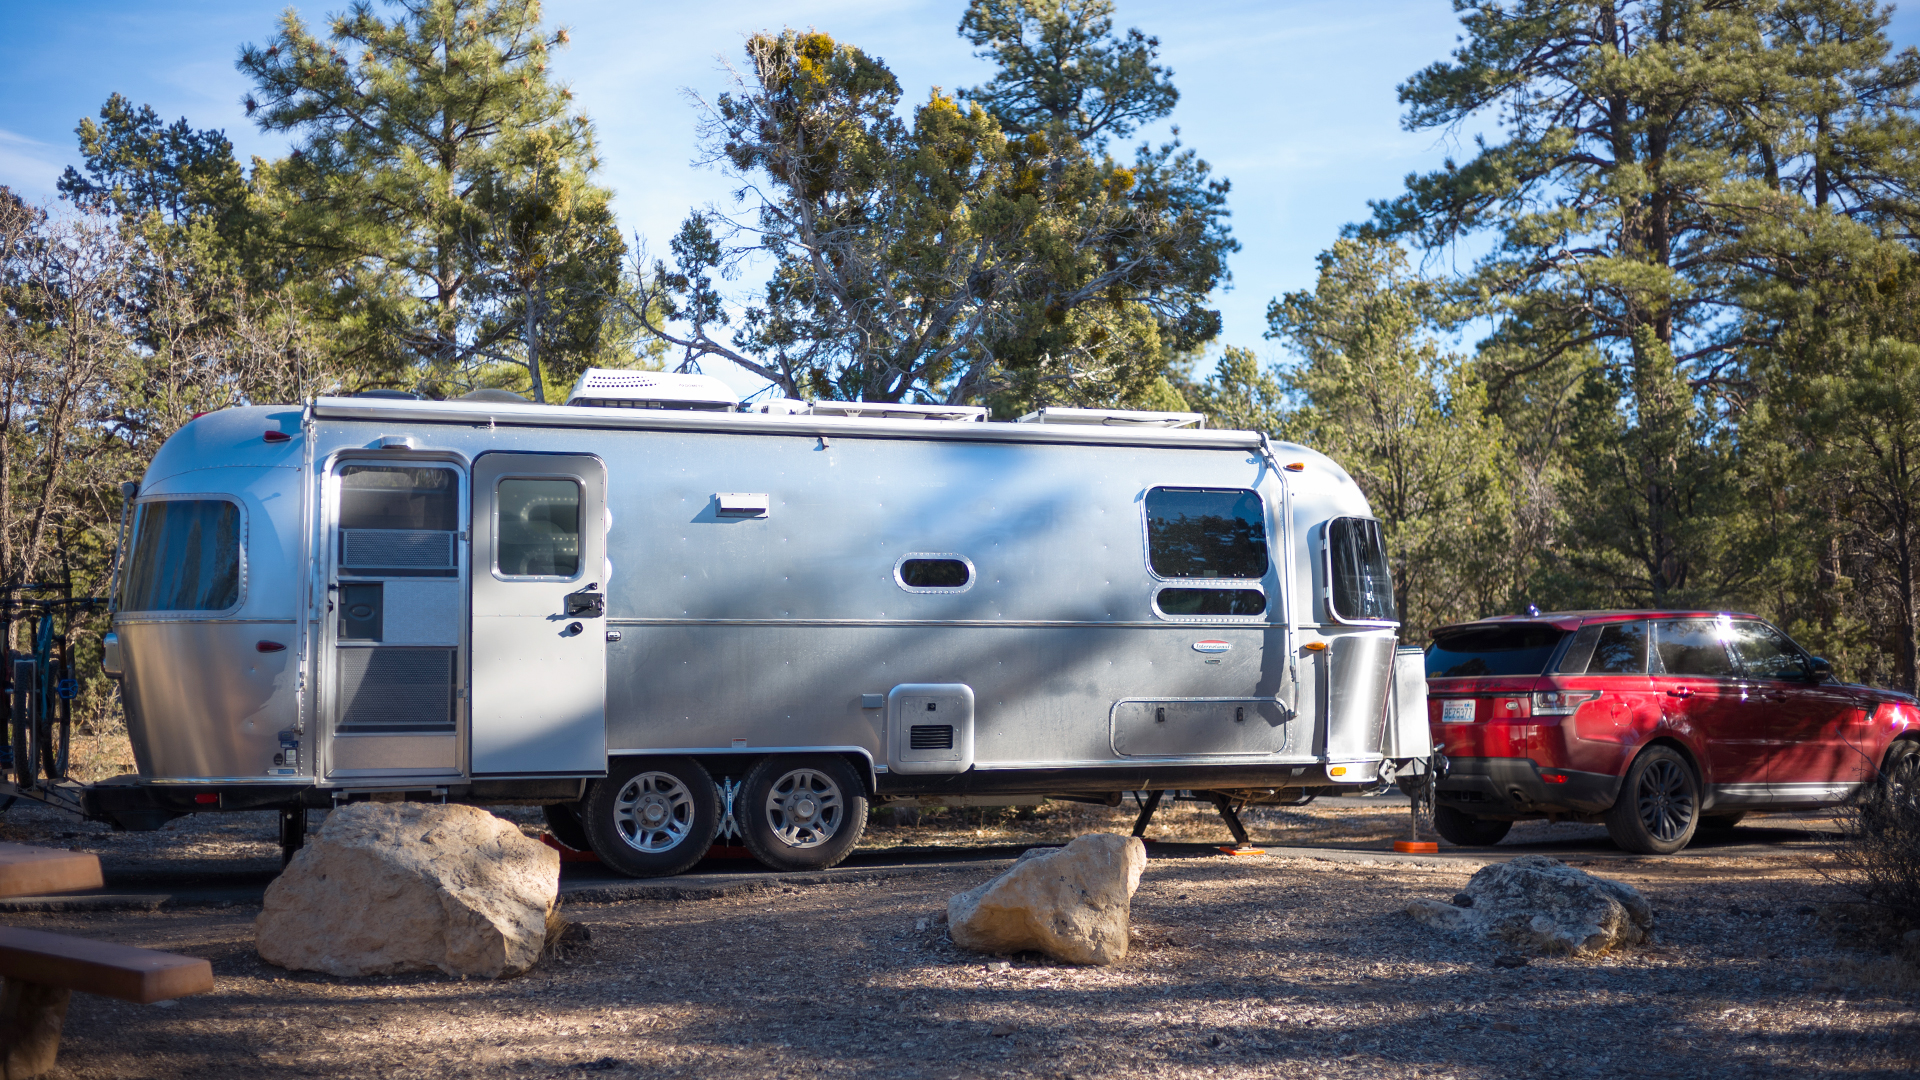 Mather-Campground-South-Rim-Airstream-Travel-Trailer